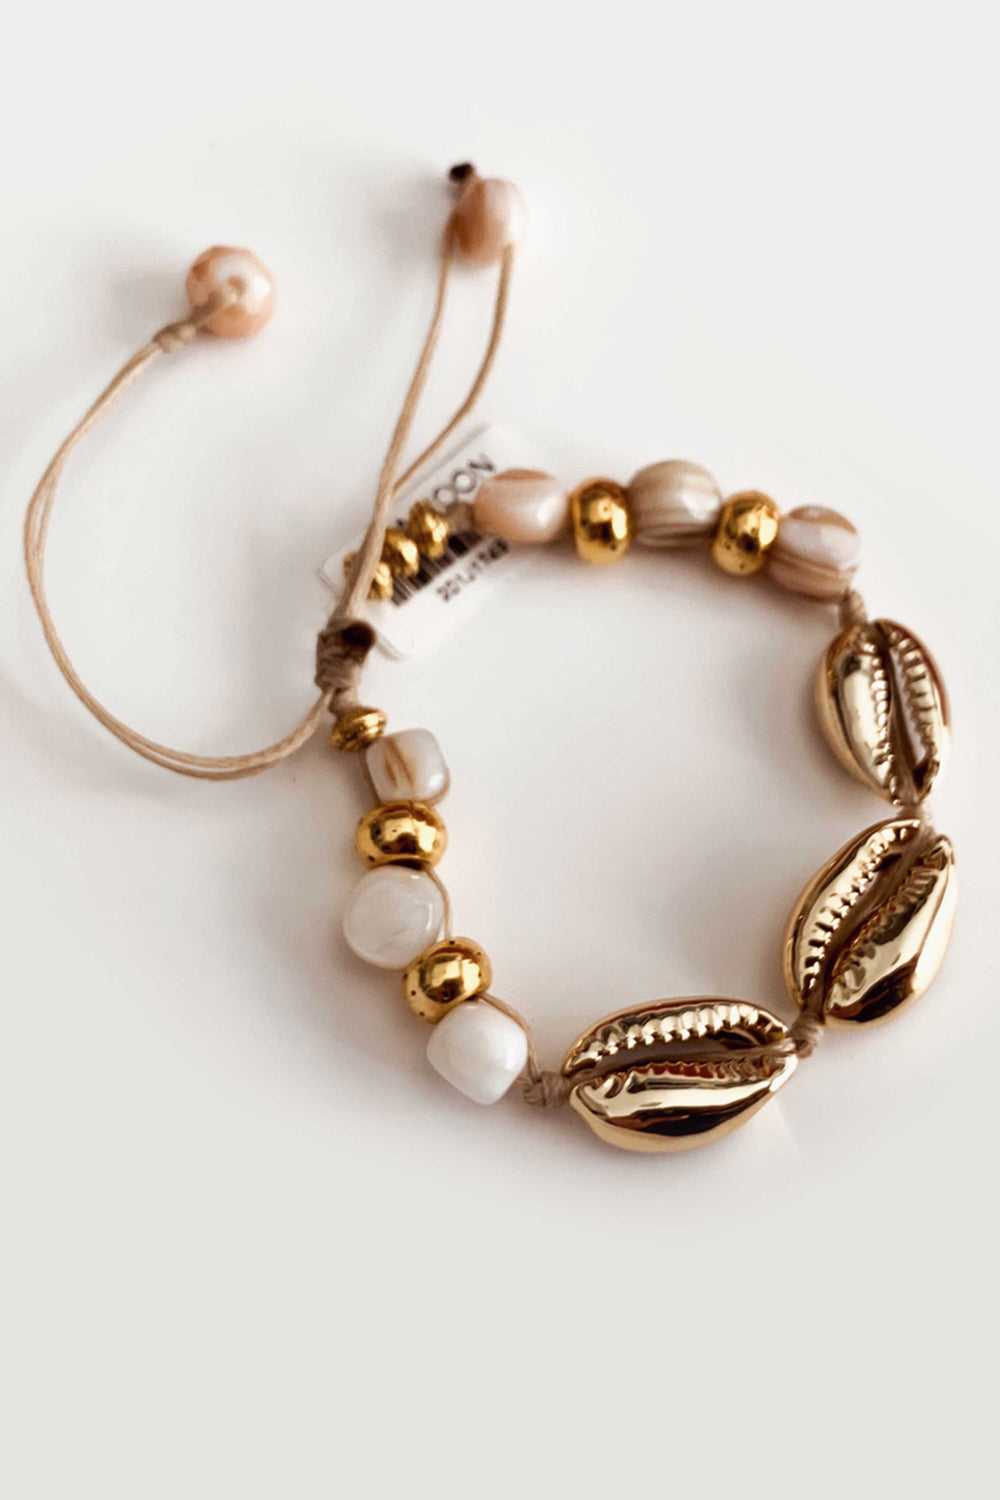 GOLDEN SHELL BRACELET - Chic Le Frique